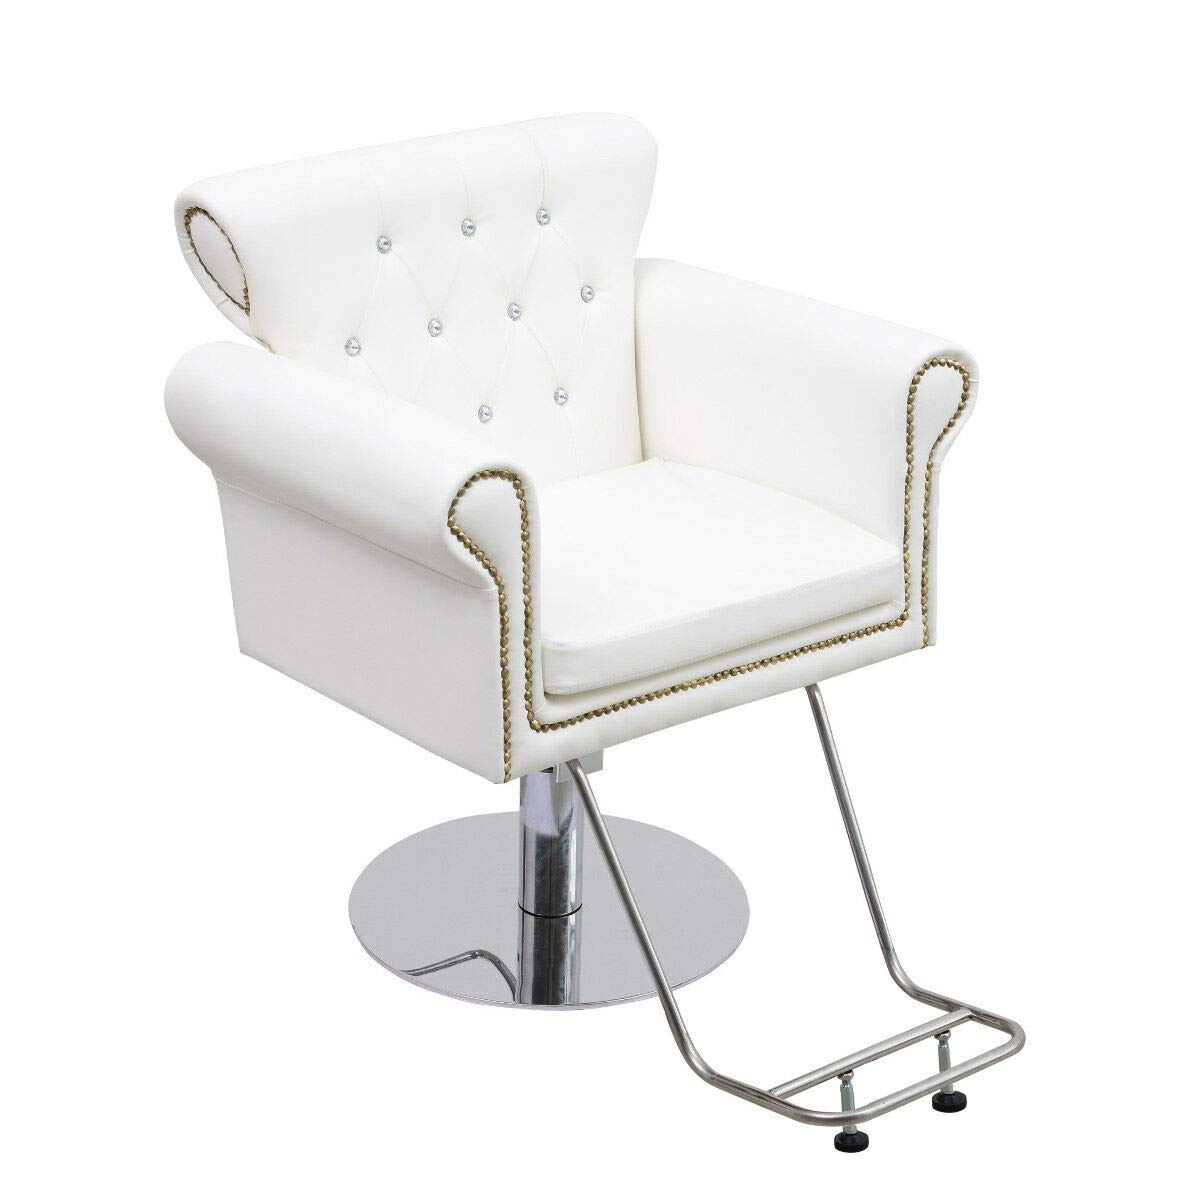 Generic Hydraulic Styling Chair White Barber Chair Salon Furniture Equipment